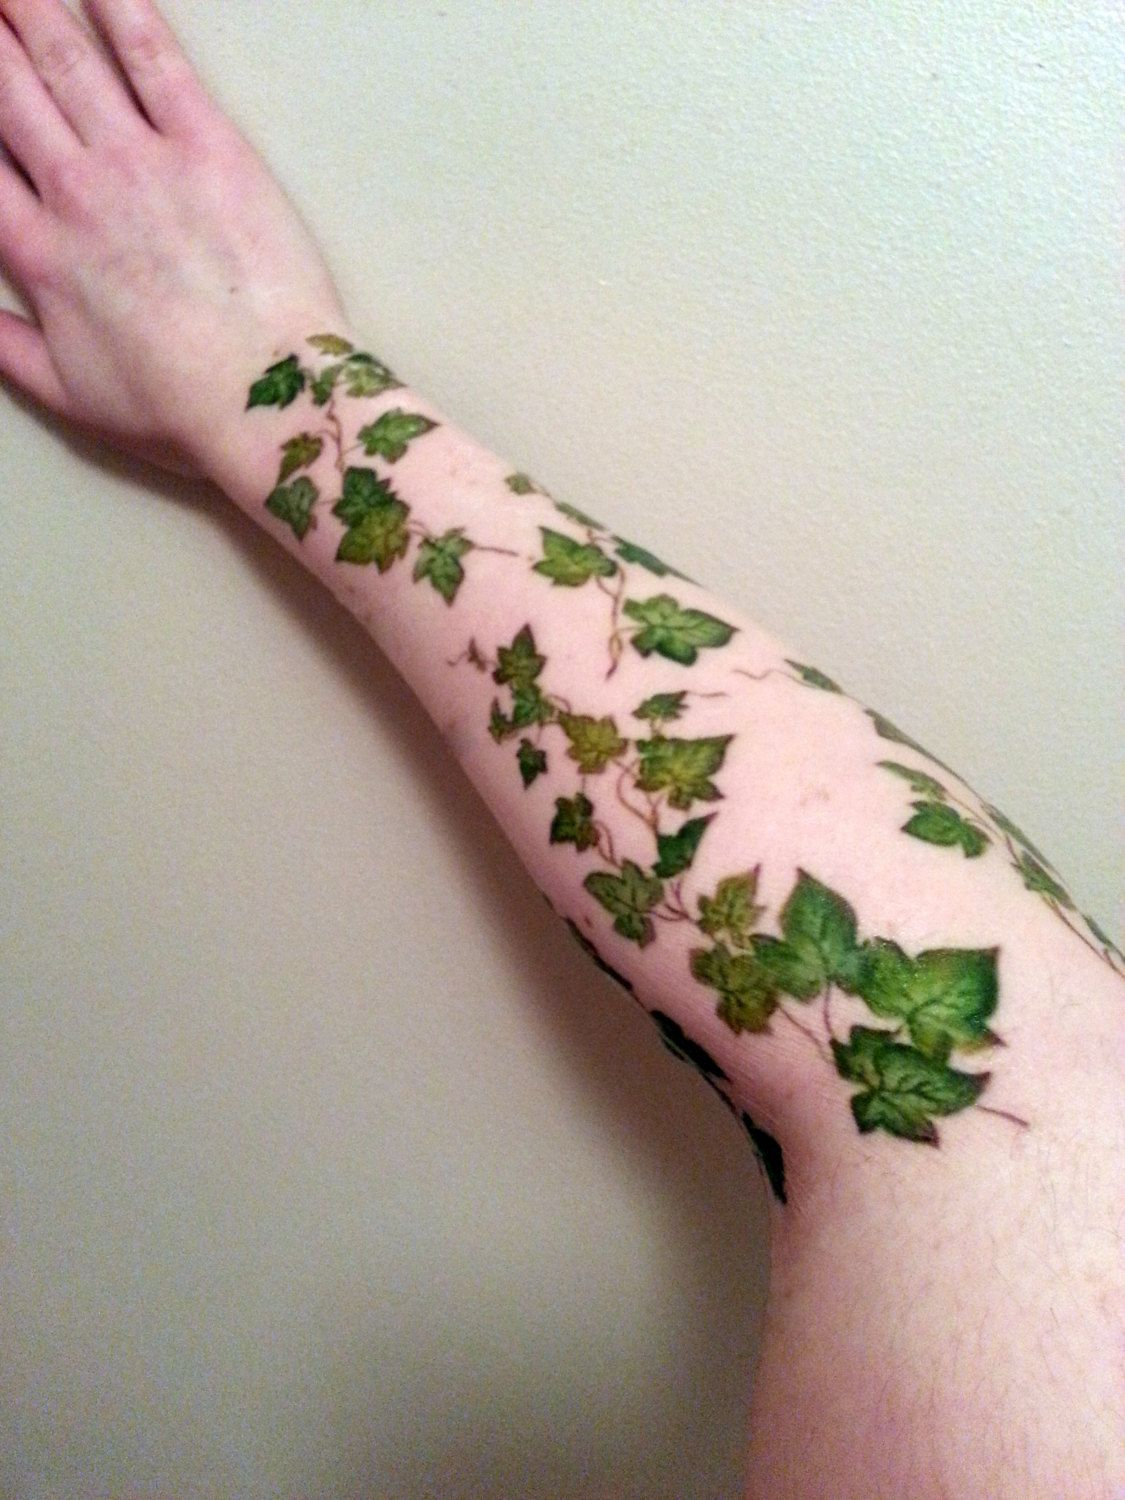 cd7faad49 Ivy Vine Tattoo Arm Wrap Tattoo Sleeve Tattoo by InsanityINK ...